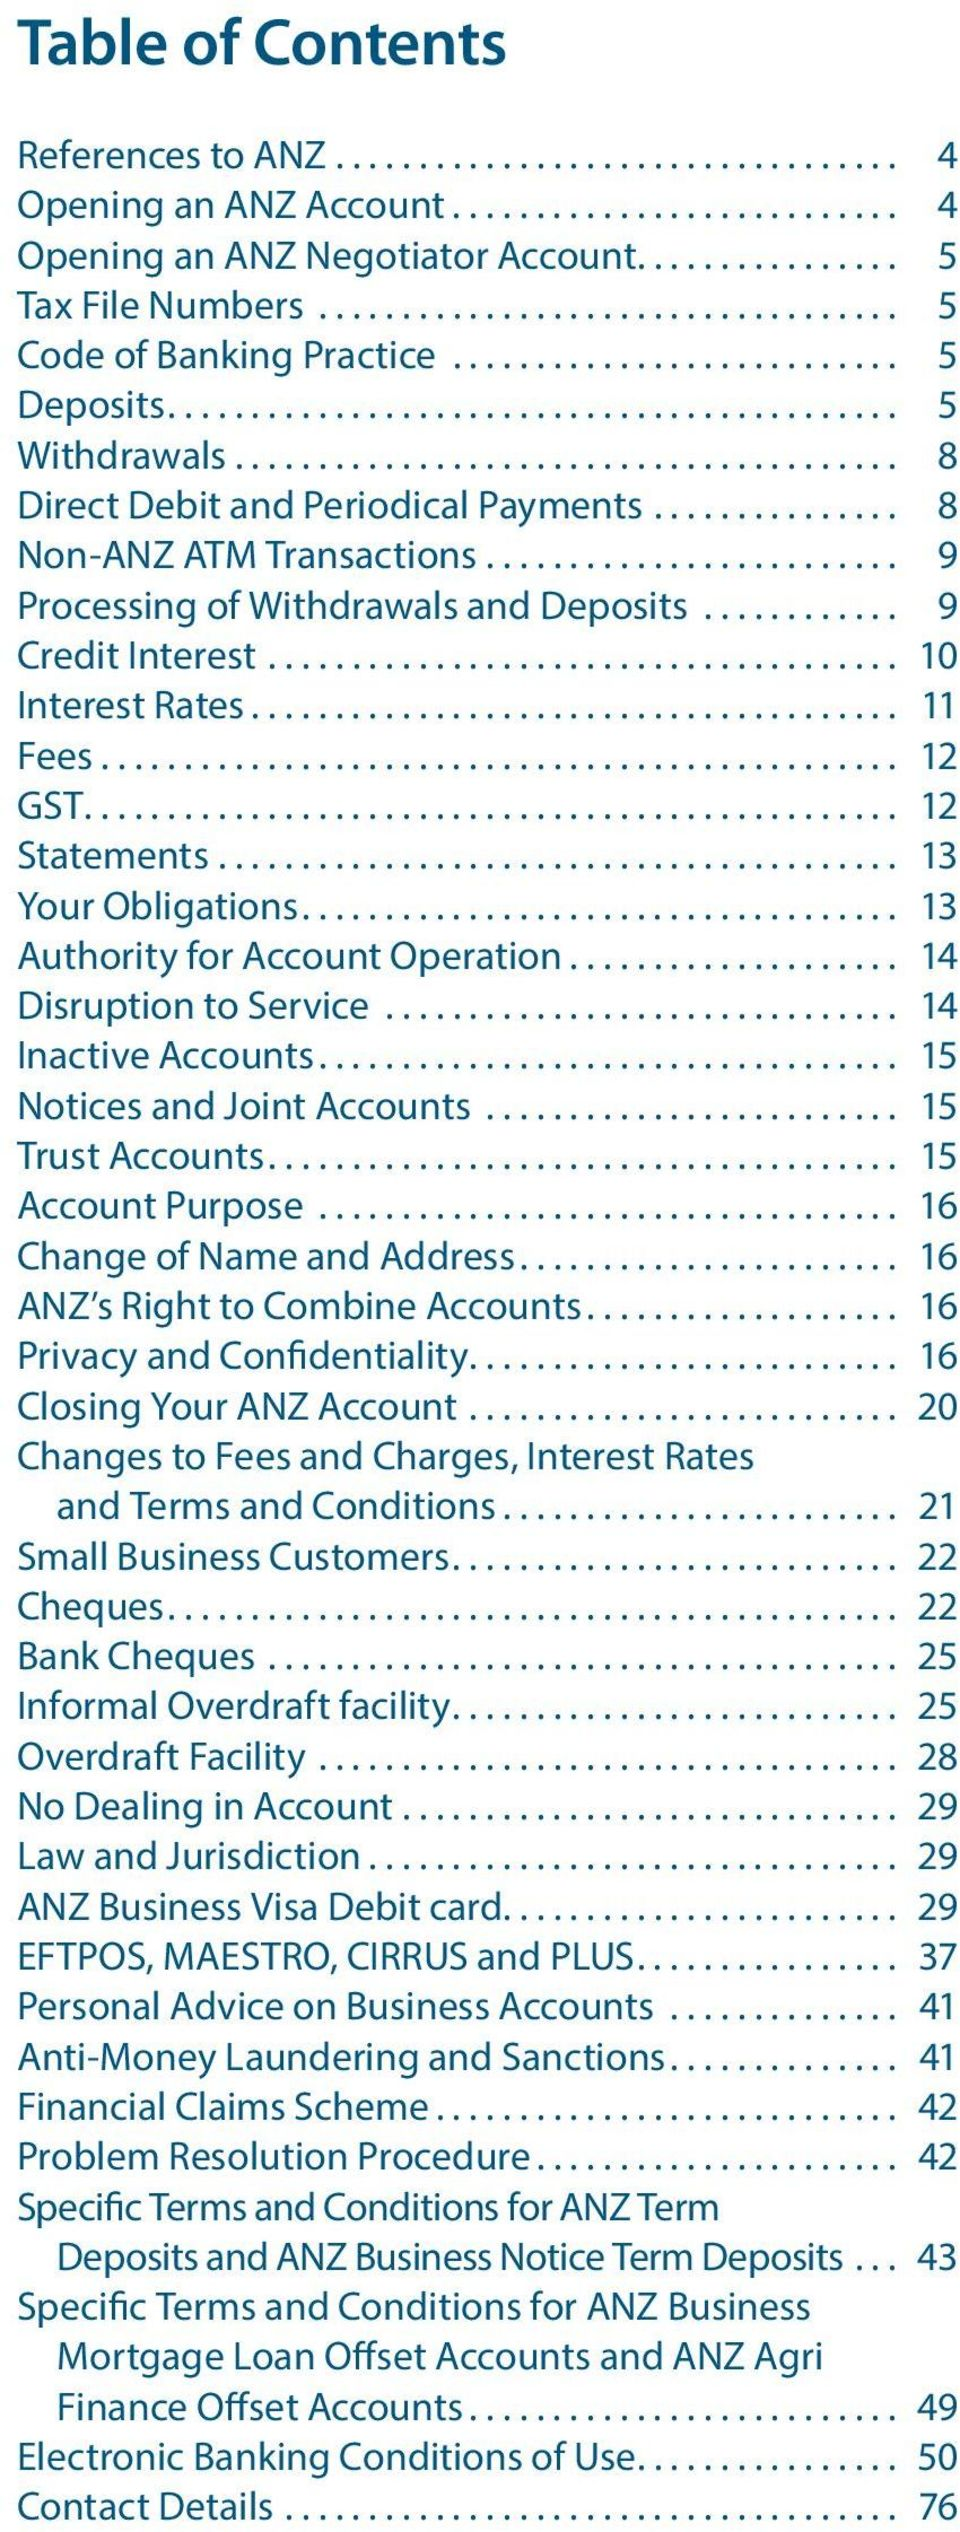 .. 13 Your Obligations... 13 Authority for Account Operation... 14 Disruption to Service... 14 Inactive Accounts... 15 Notices and Joint Accounts... 15 Trust Accounts... 15 Account Purpose.